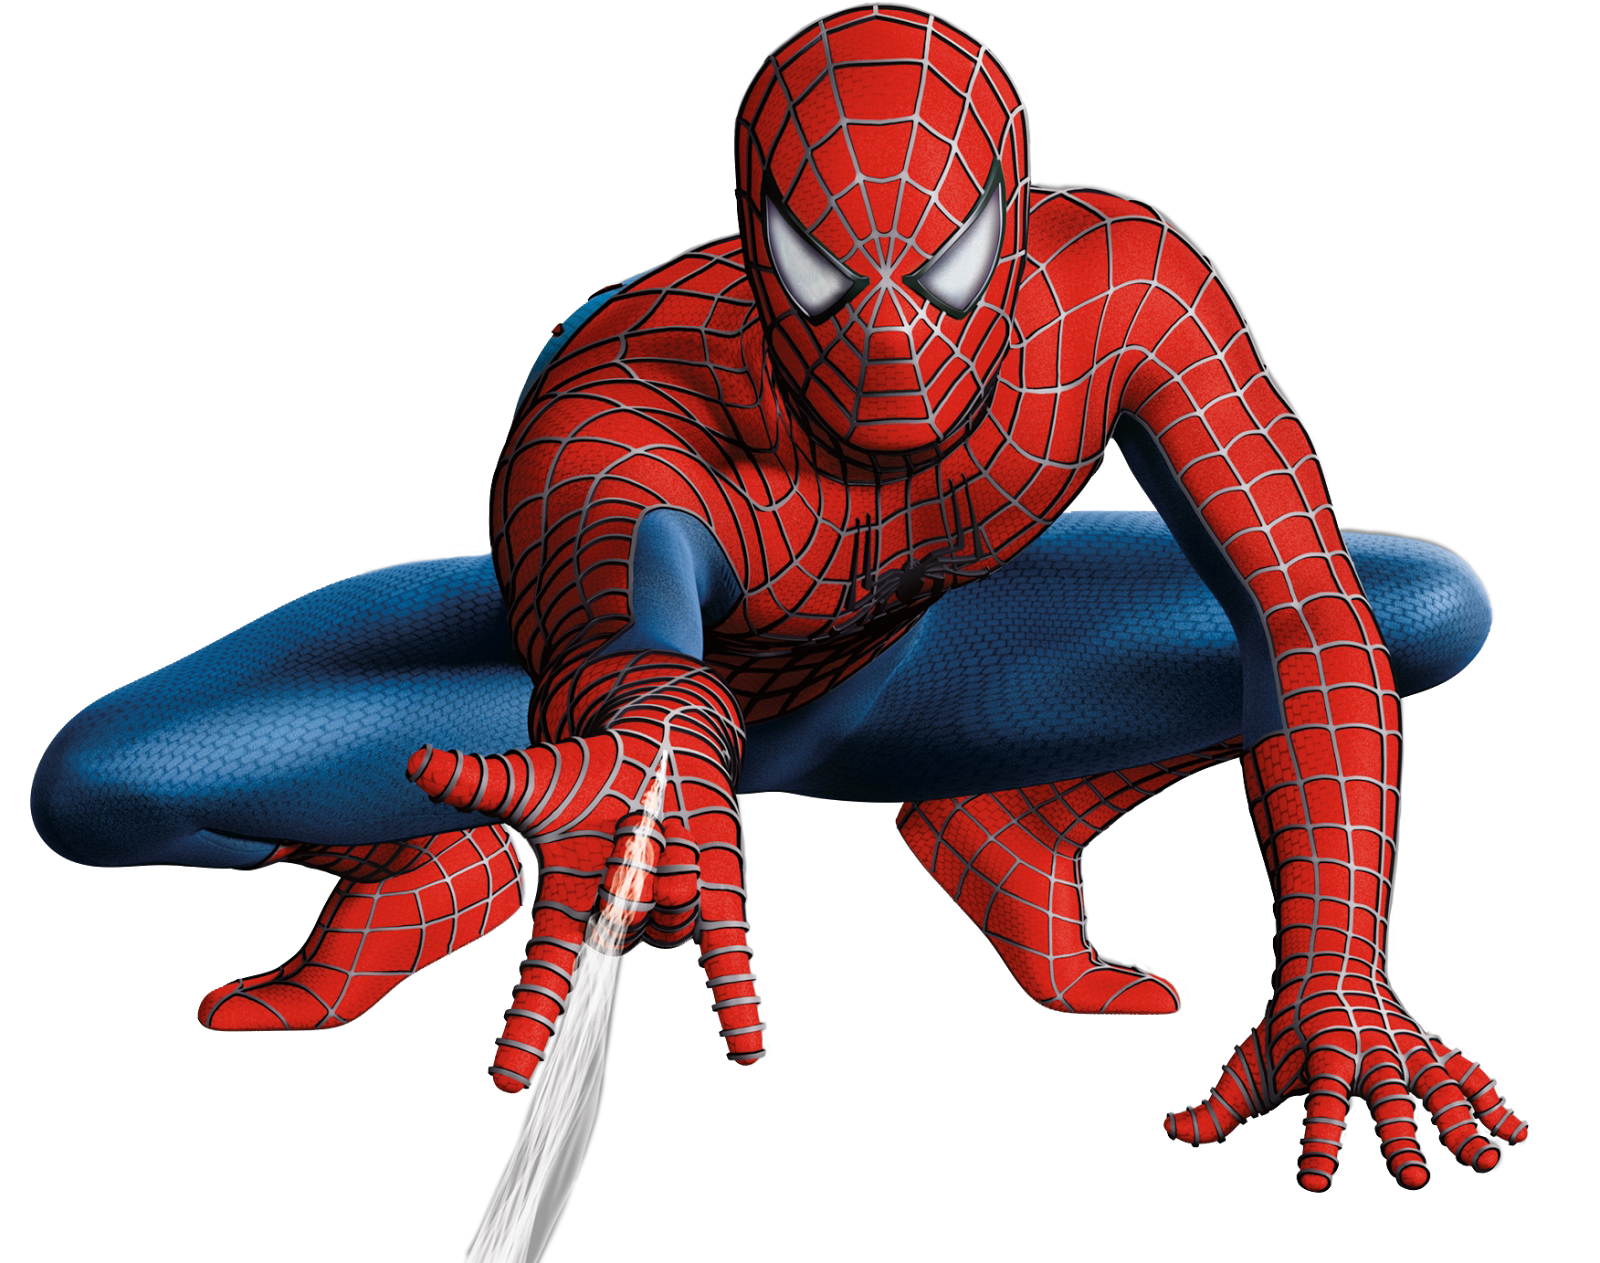 Download spider man download png hq png image freepngimg - Image spiderman ...